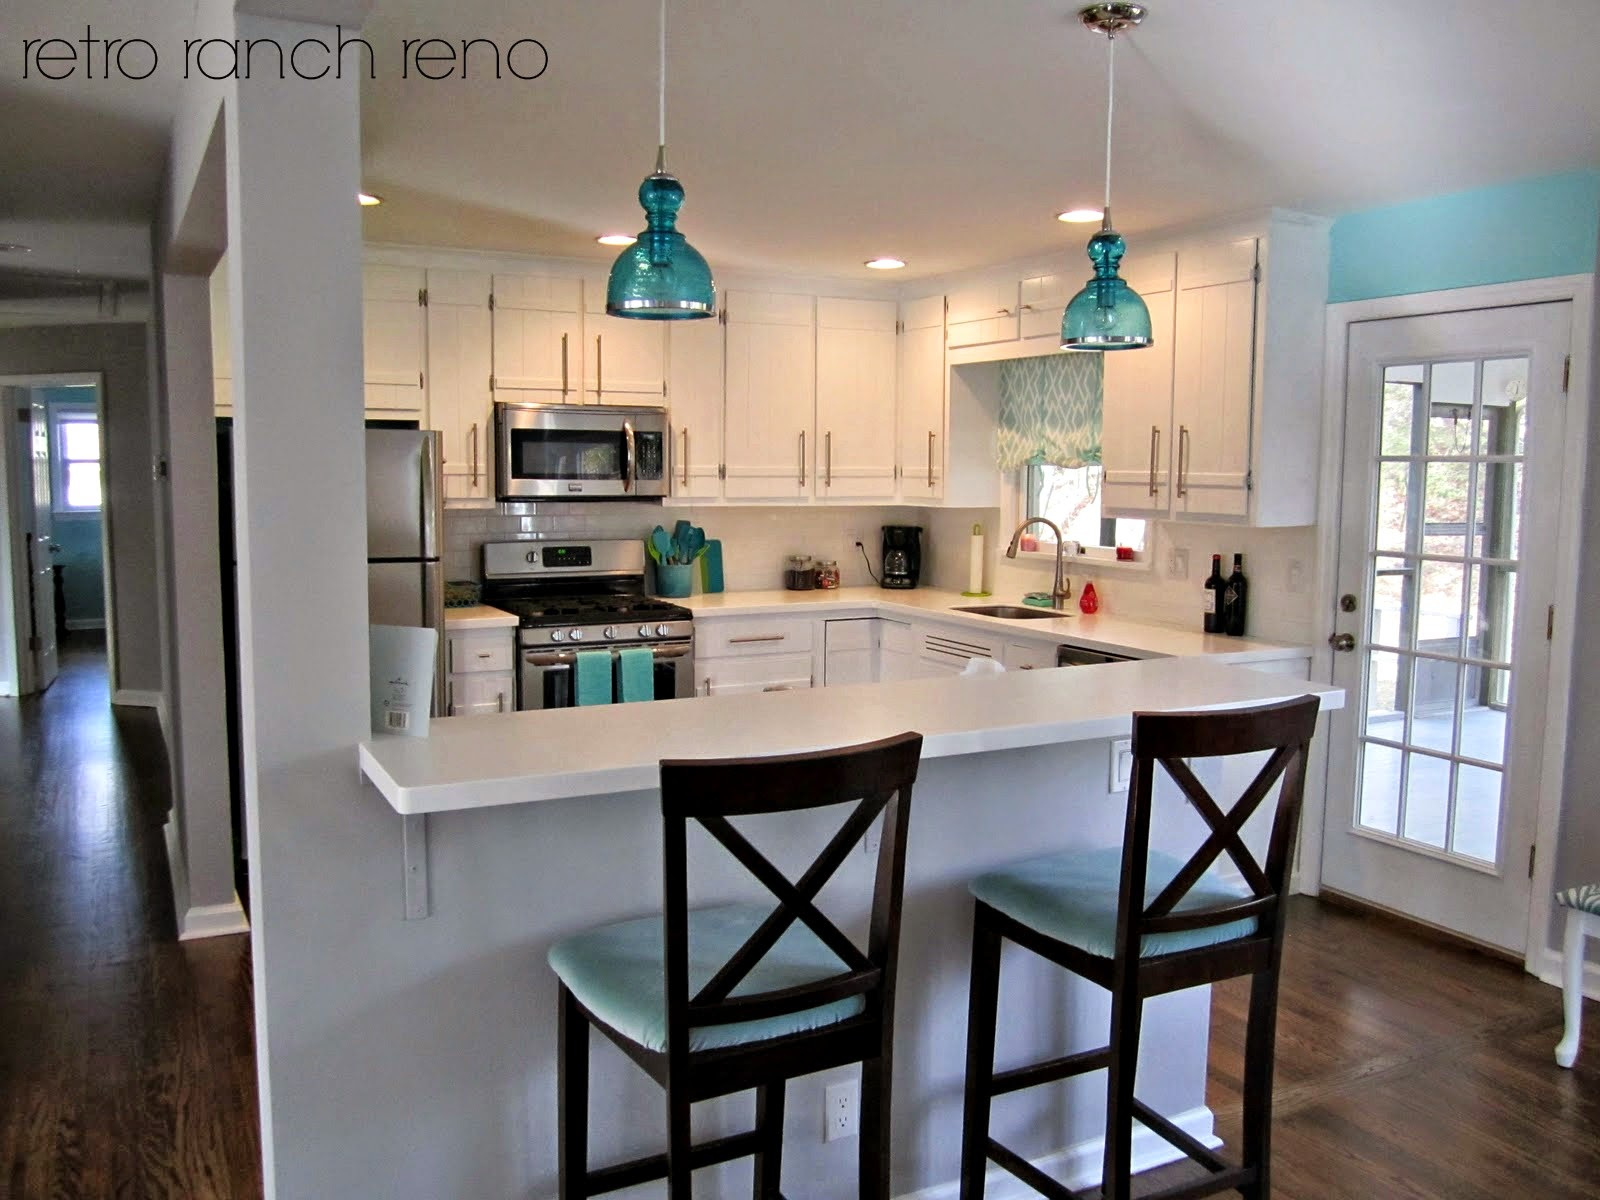 retro ranch reno kitchen dreaming with a little help from cabinets